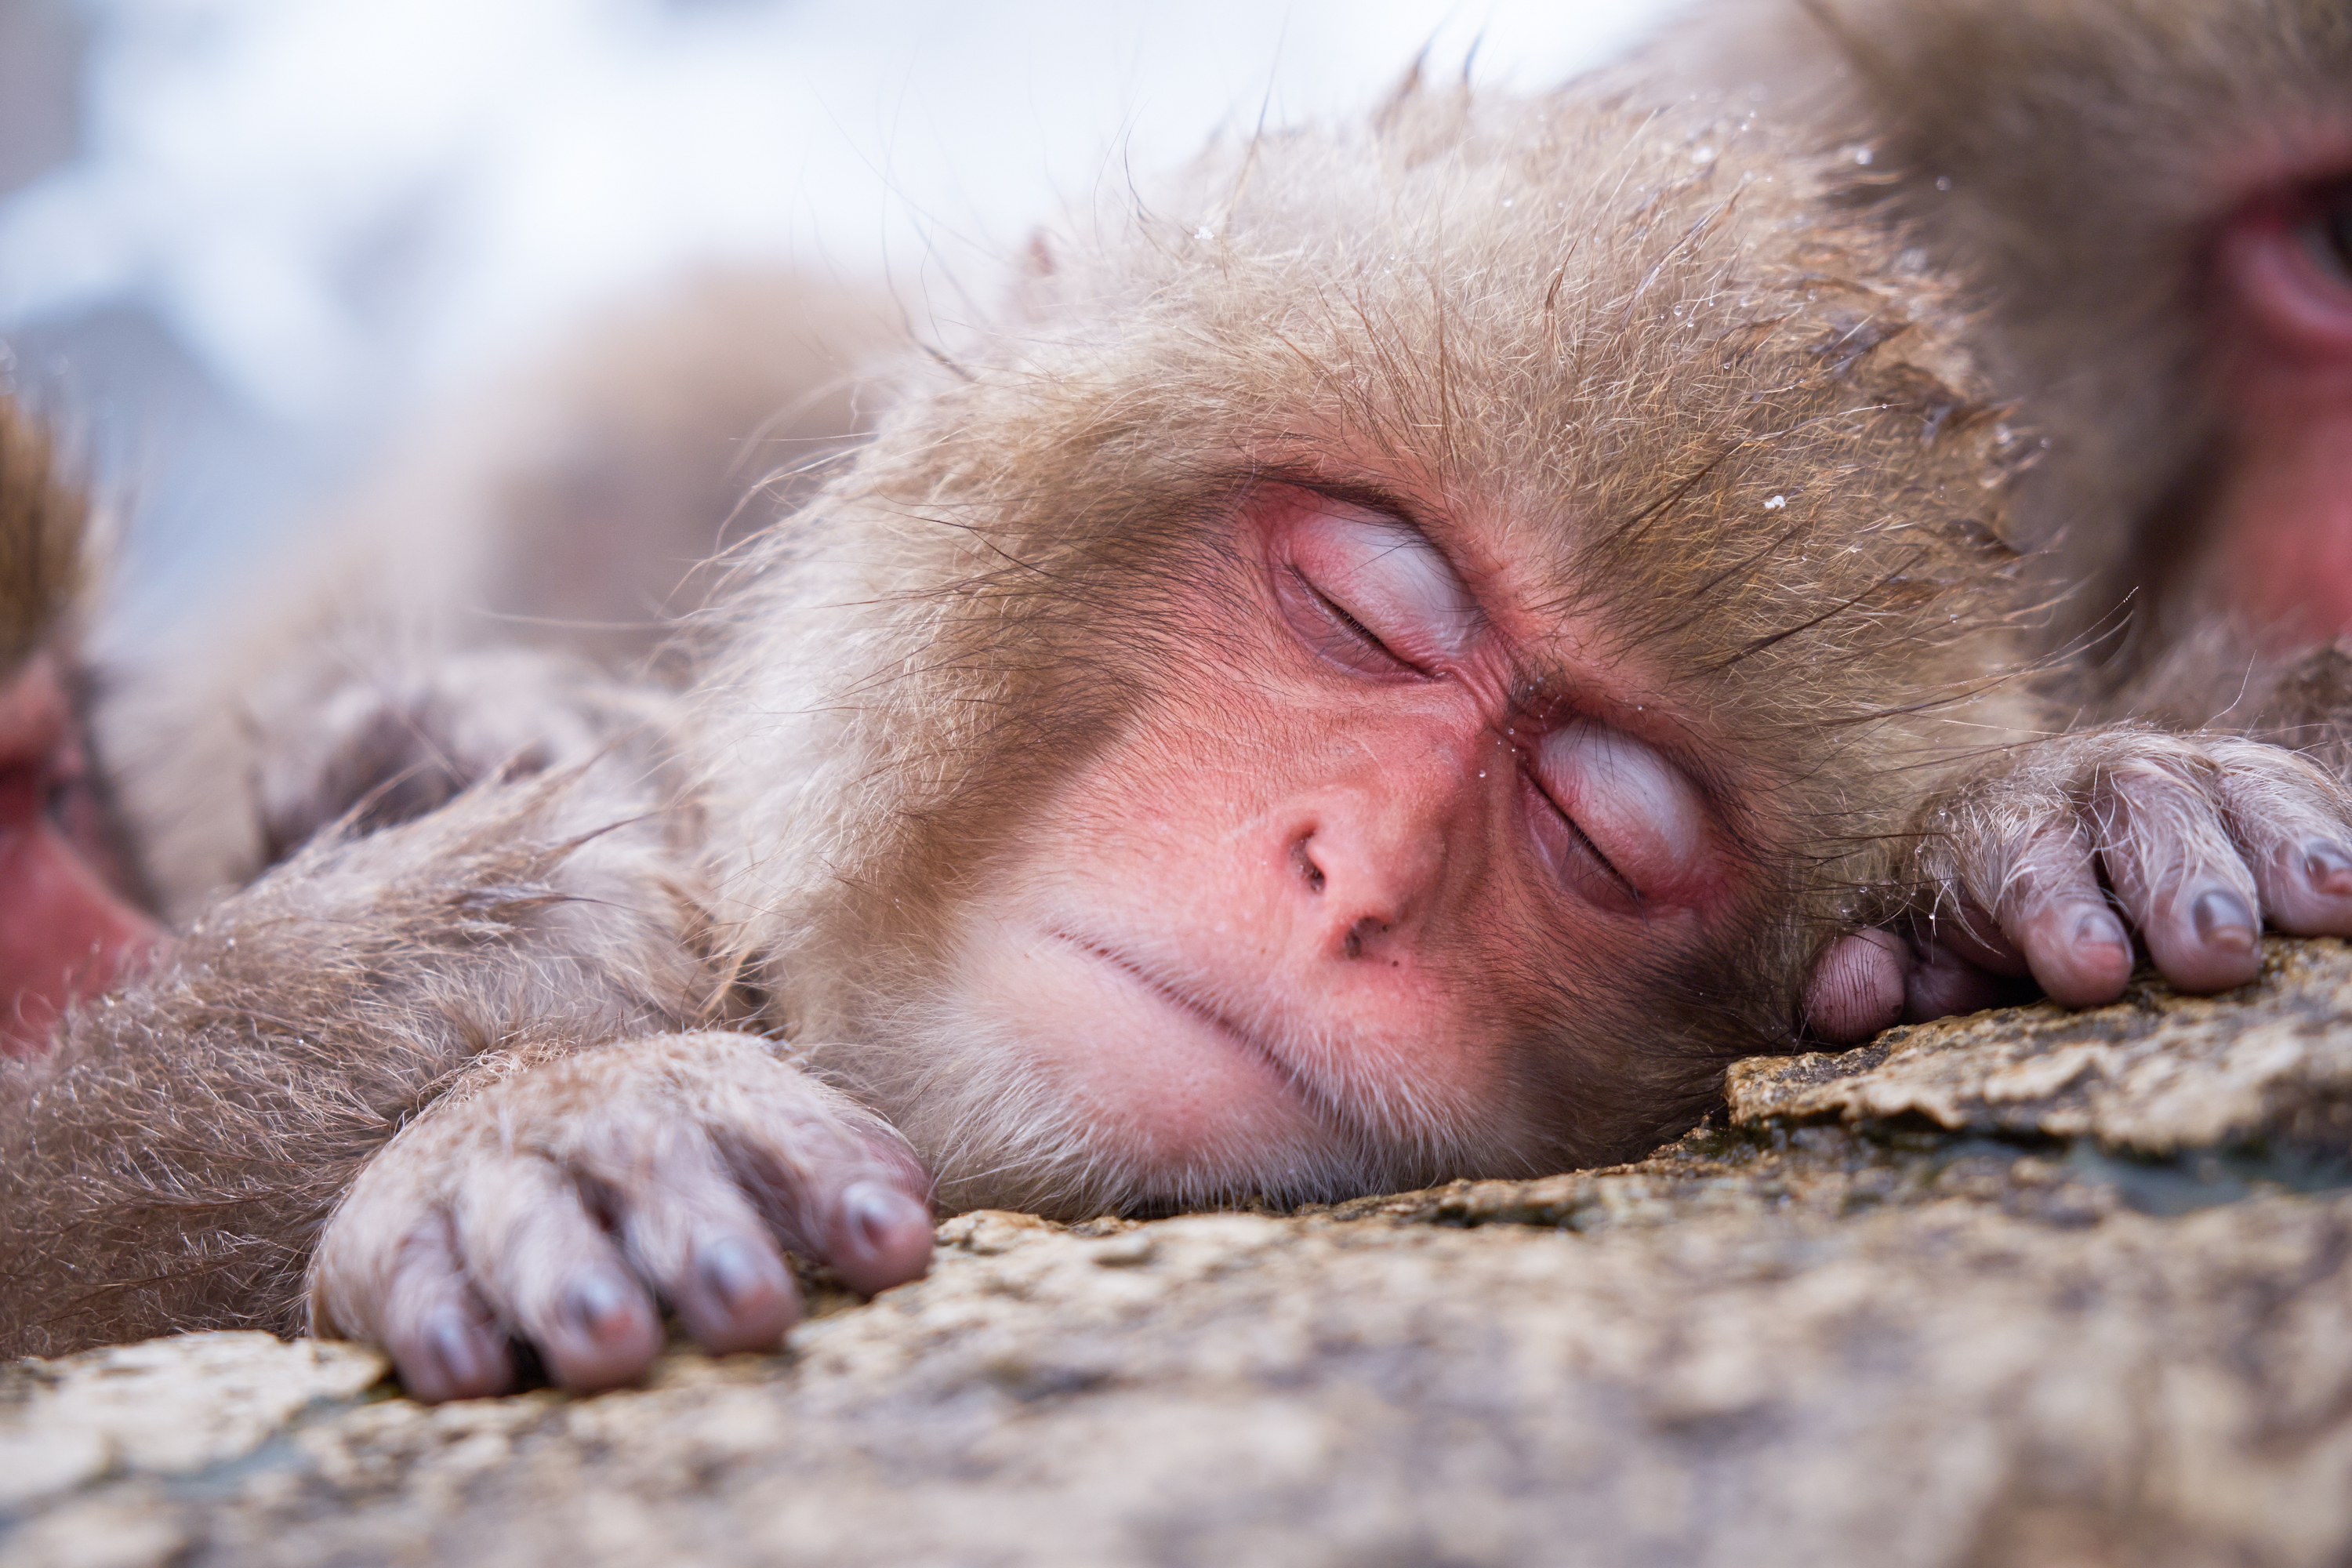 HQ Japanese Macaque Wallpapers | File 4409.97Kb